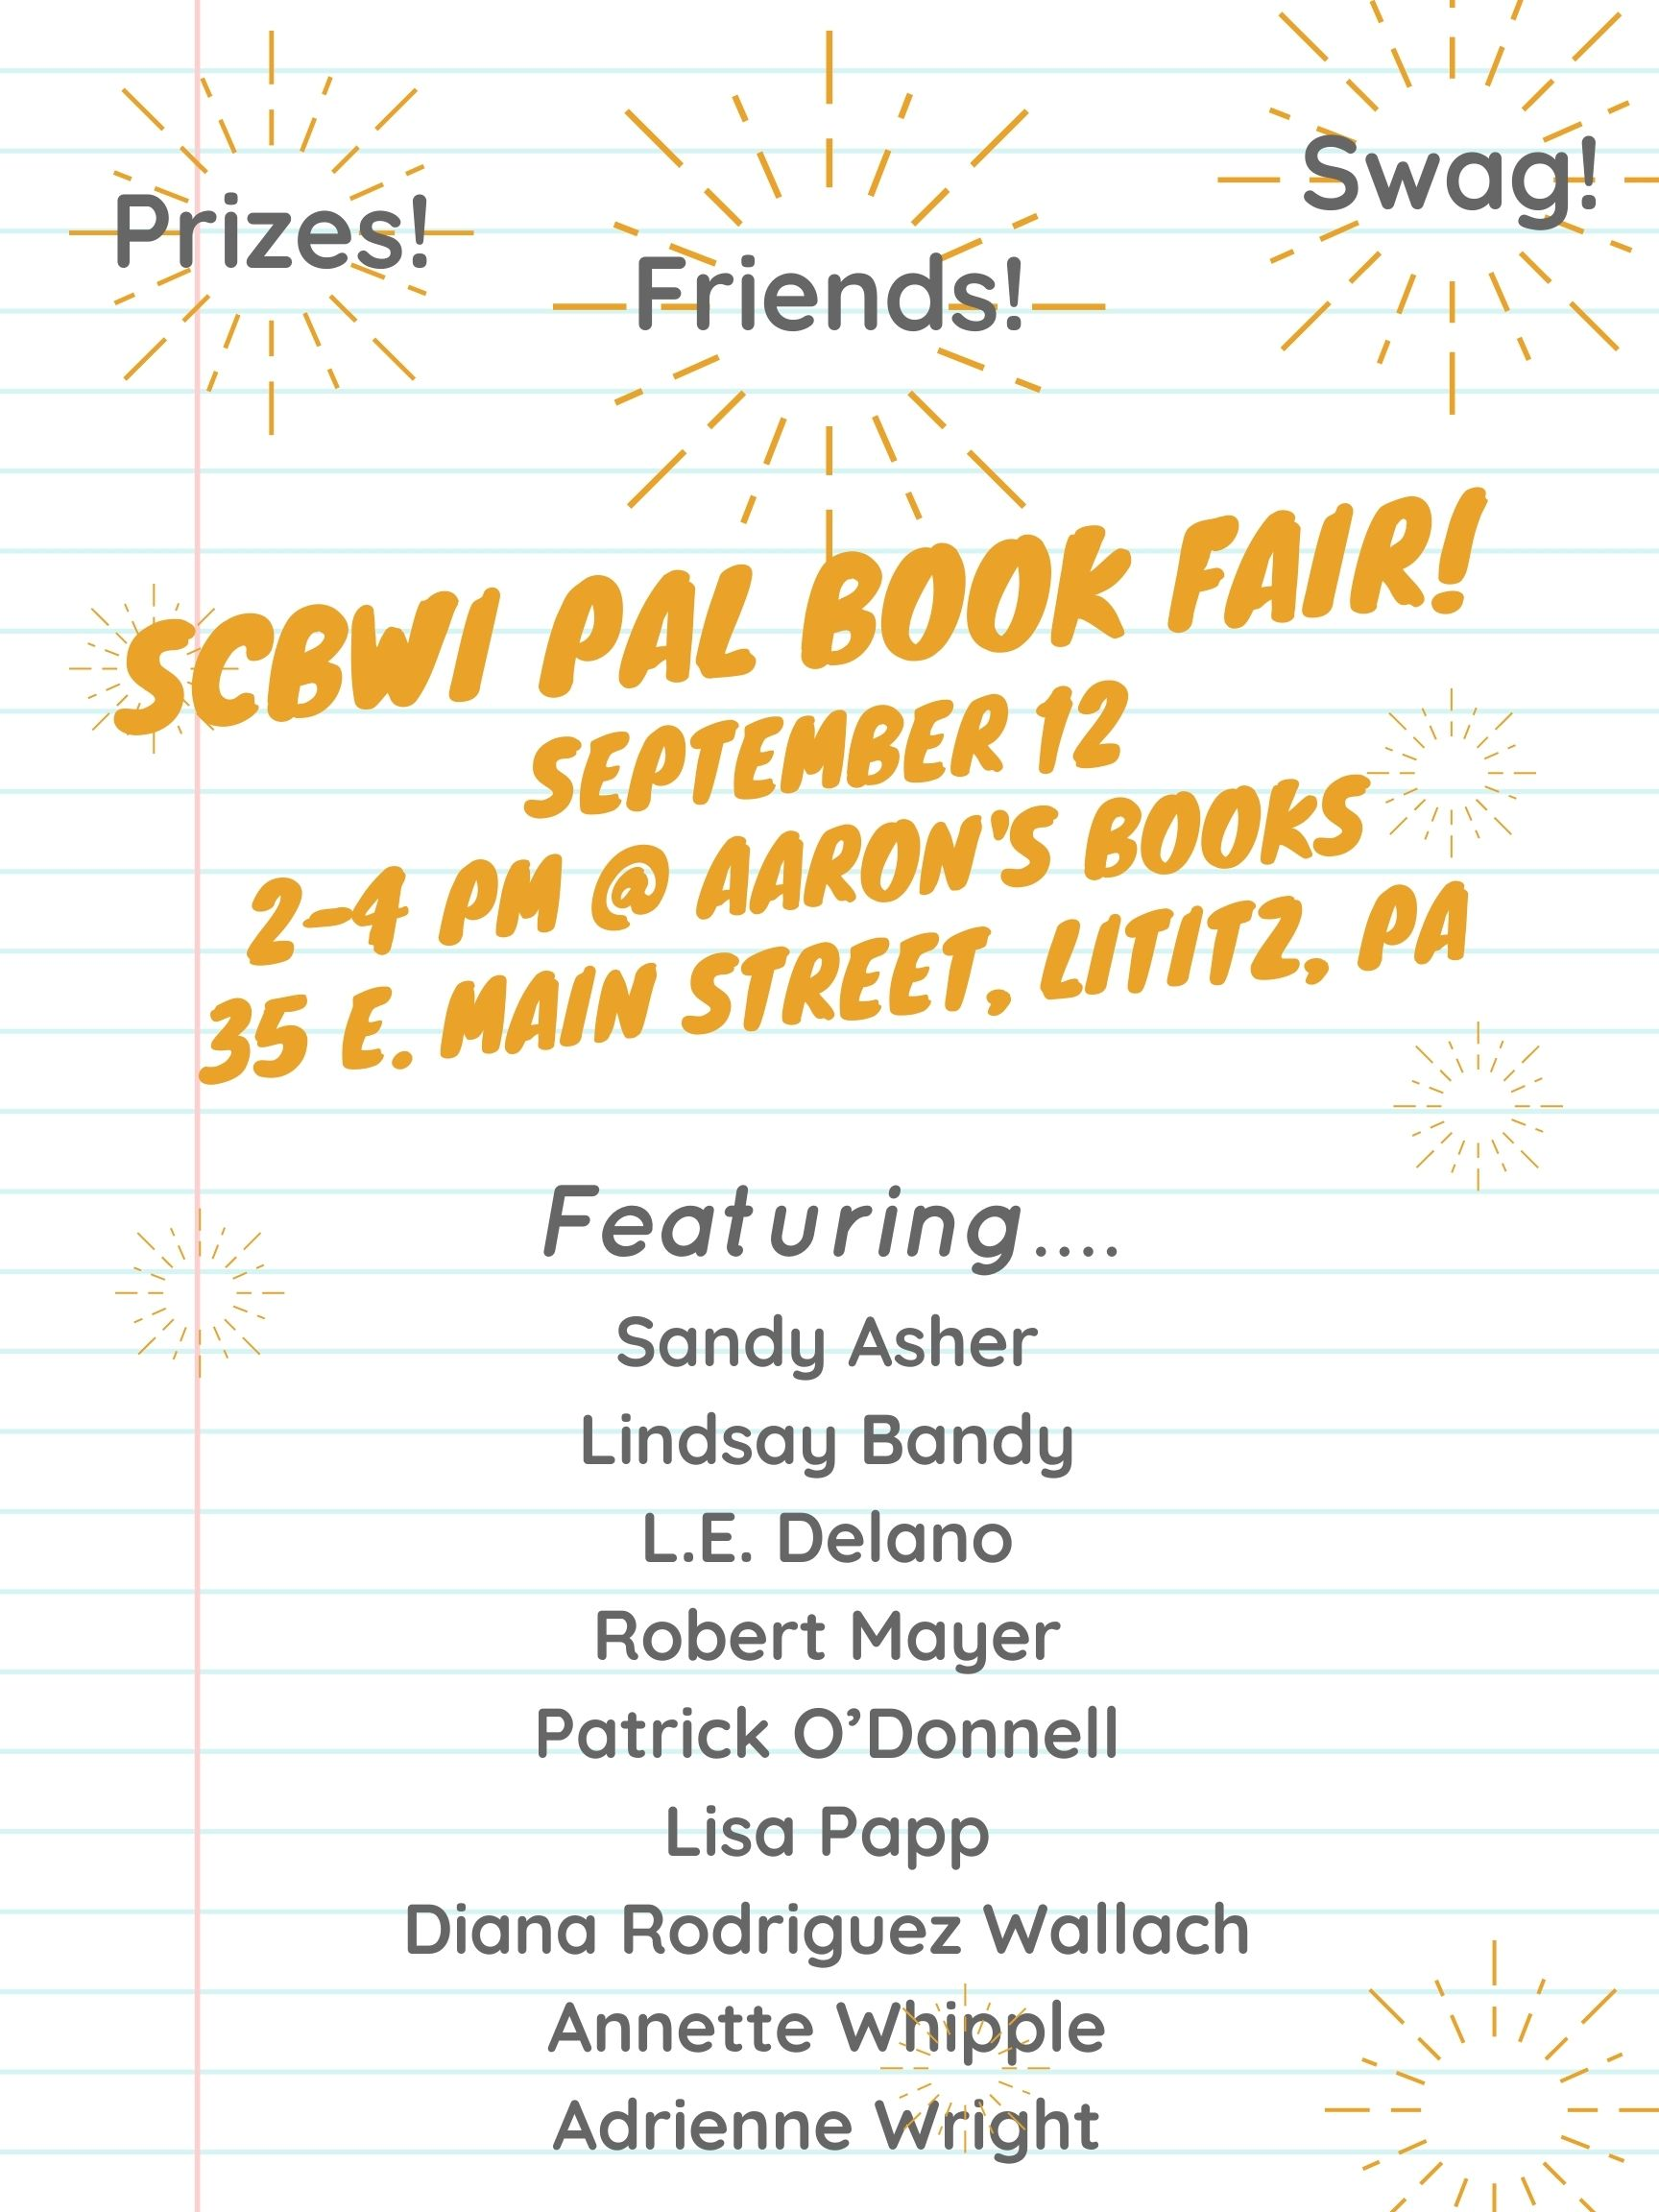 SCBWI PAL book fair! September 12 11am-4 pm at Aaron's books lititz, pa